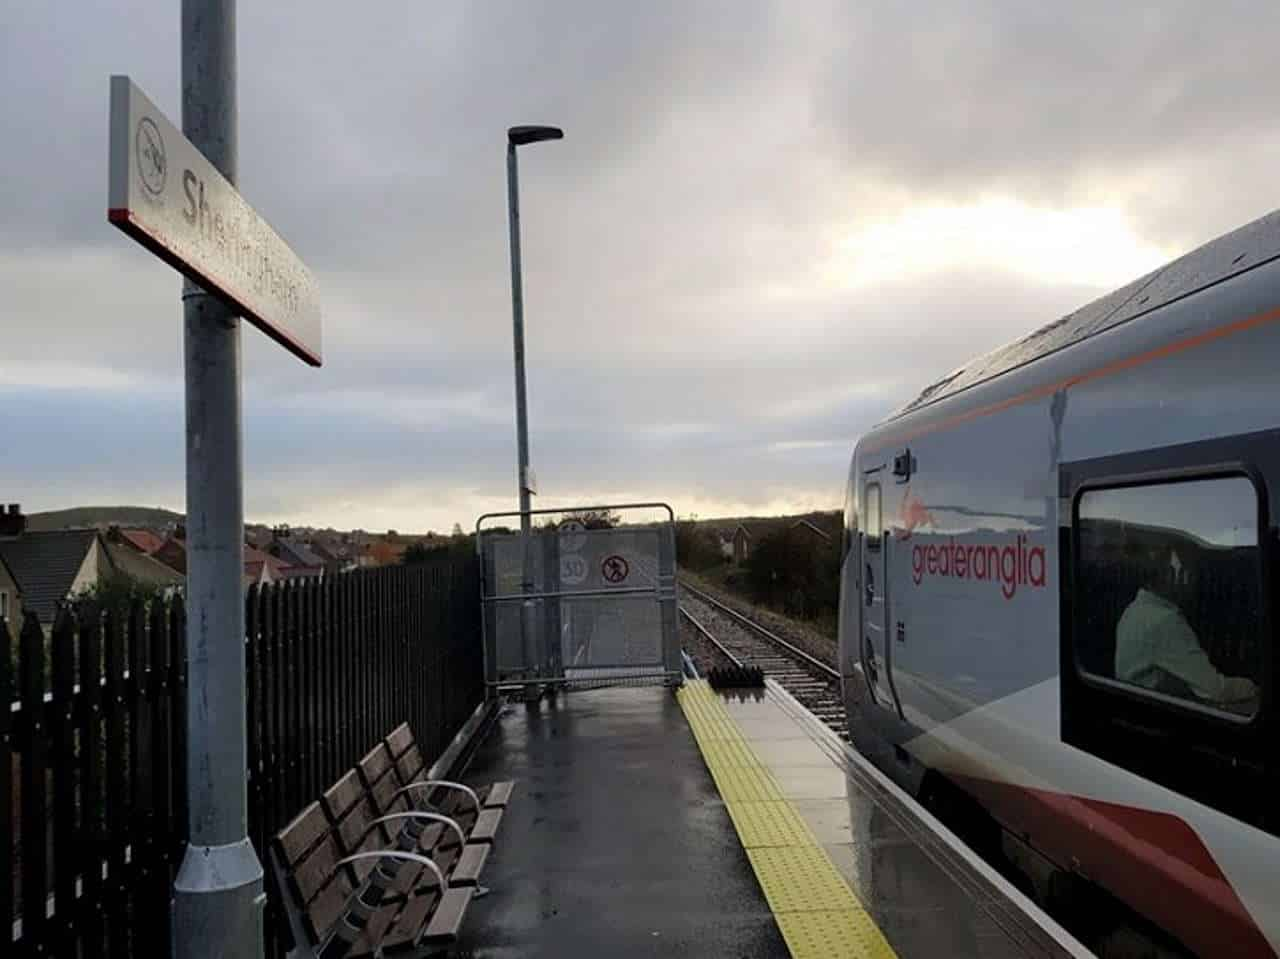 Greater Anglia Train at Sheringham on the bittern line